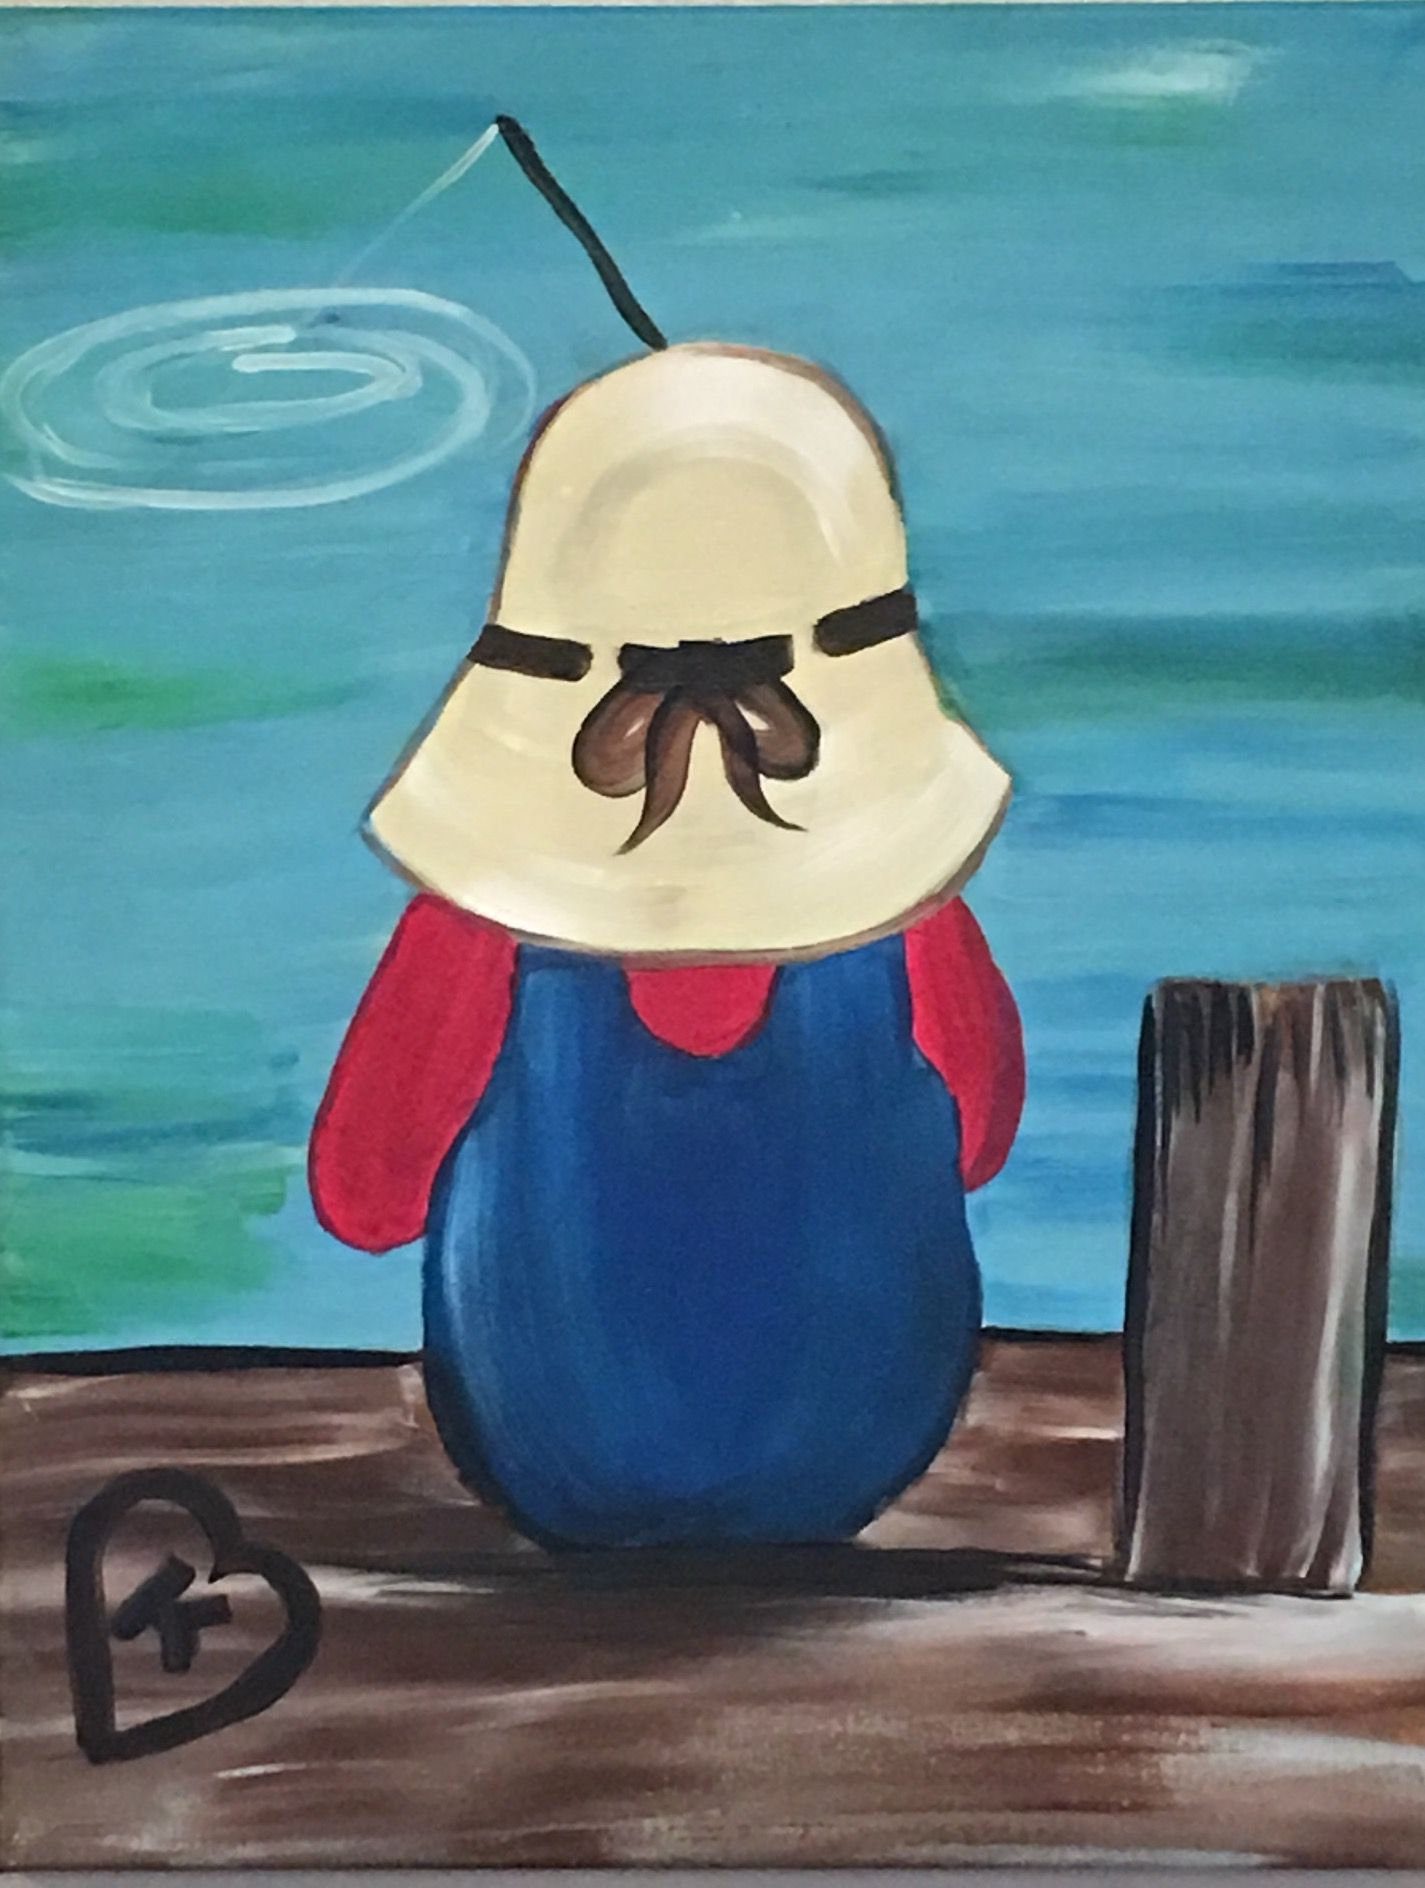 Find Lets Paint Tonight Events In Chino Hills And Inland Empire Join For A Fun Night With